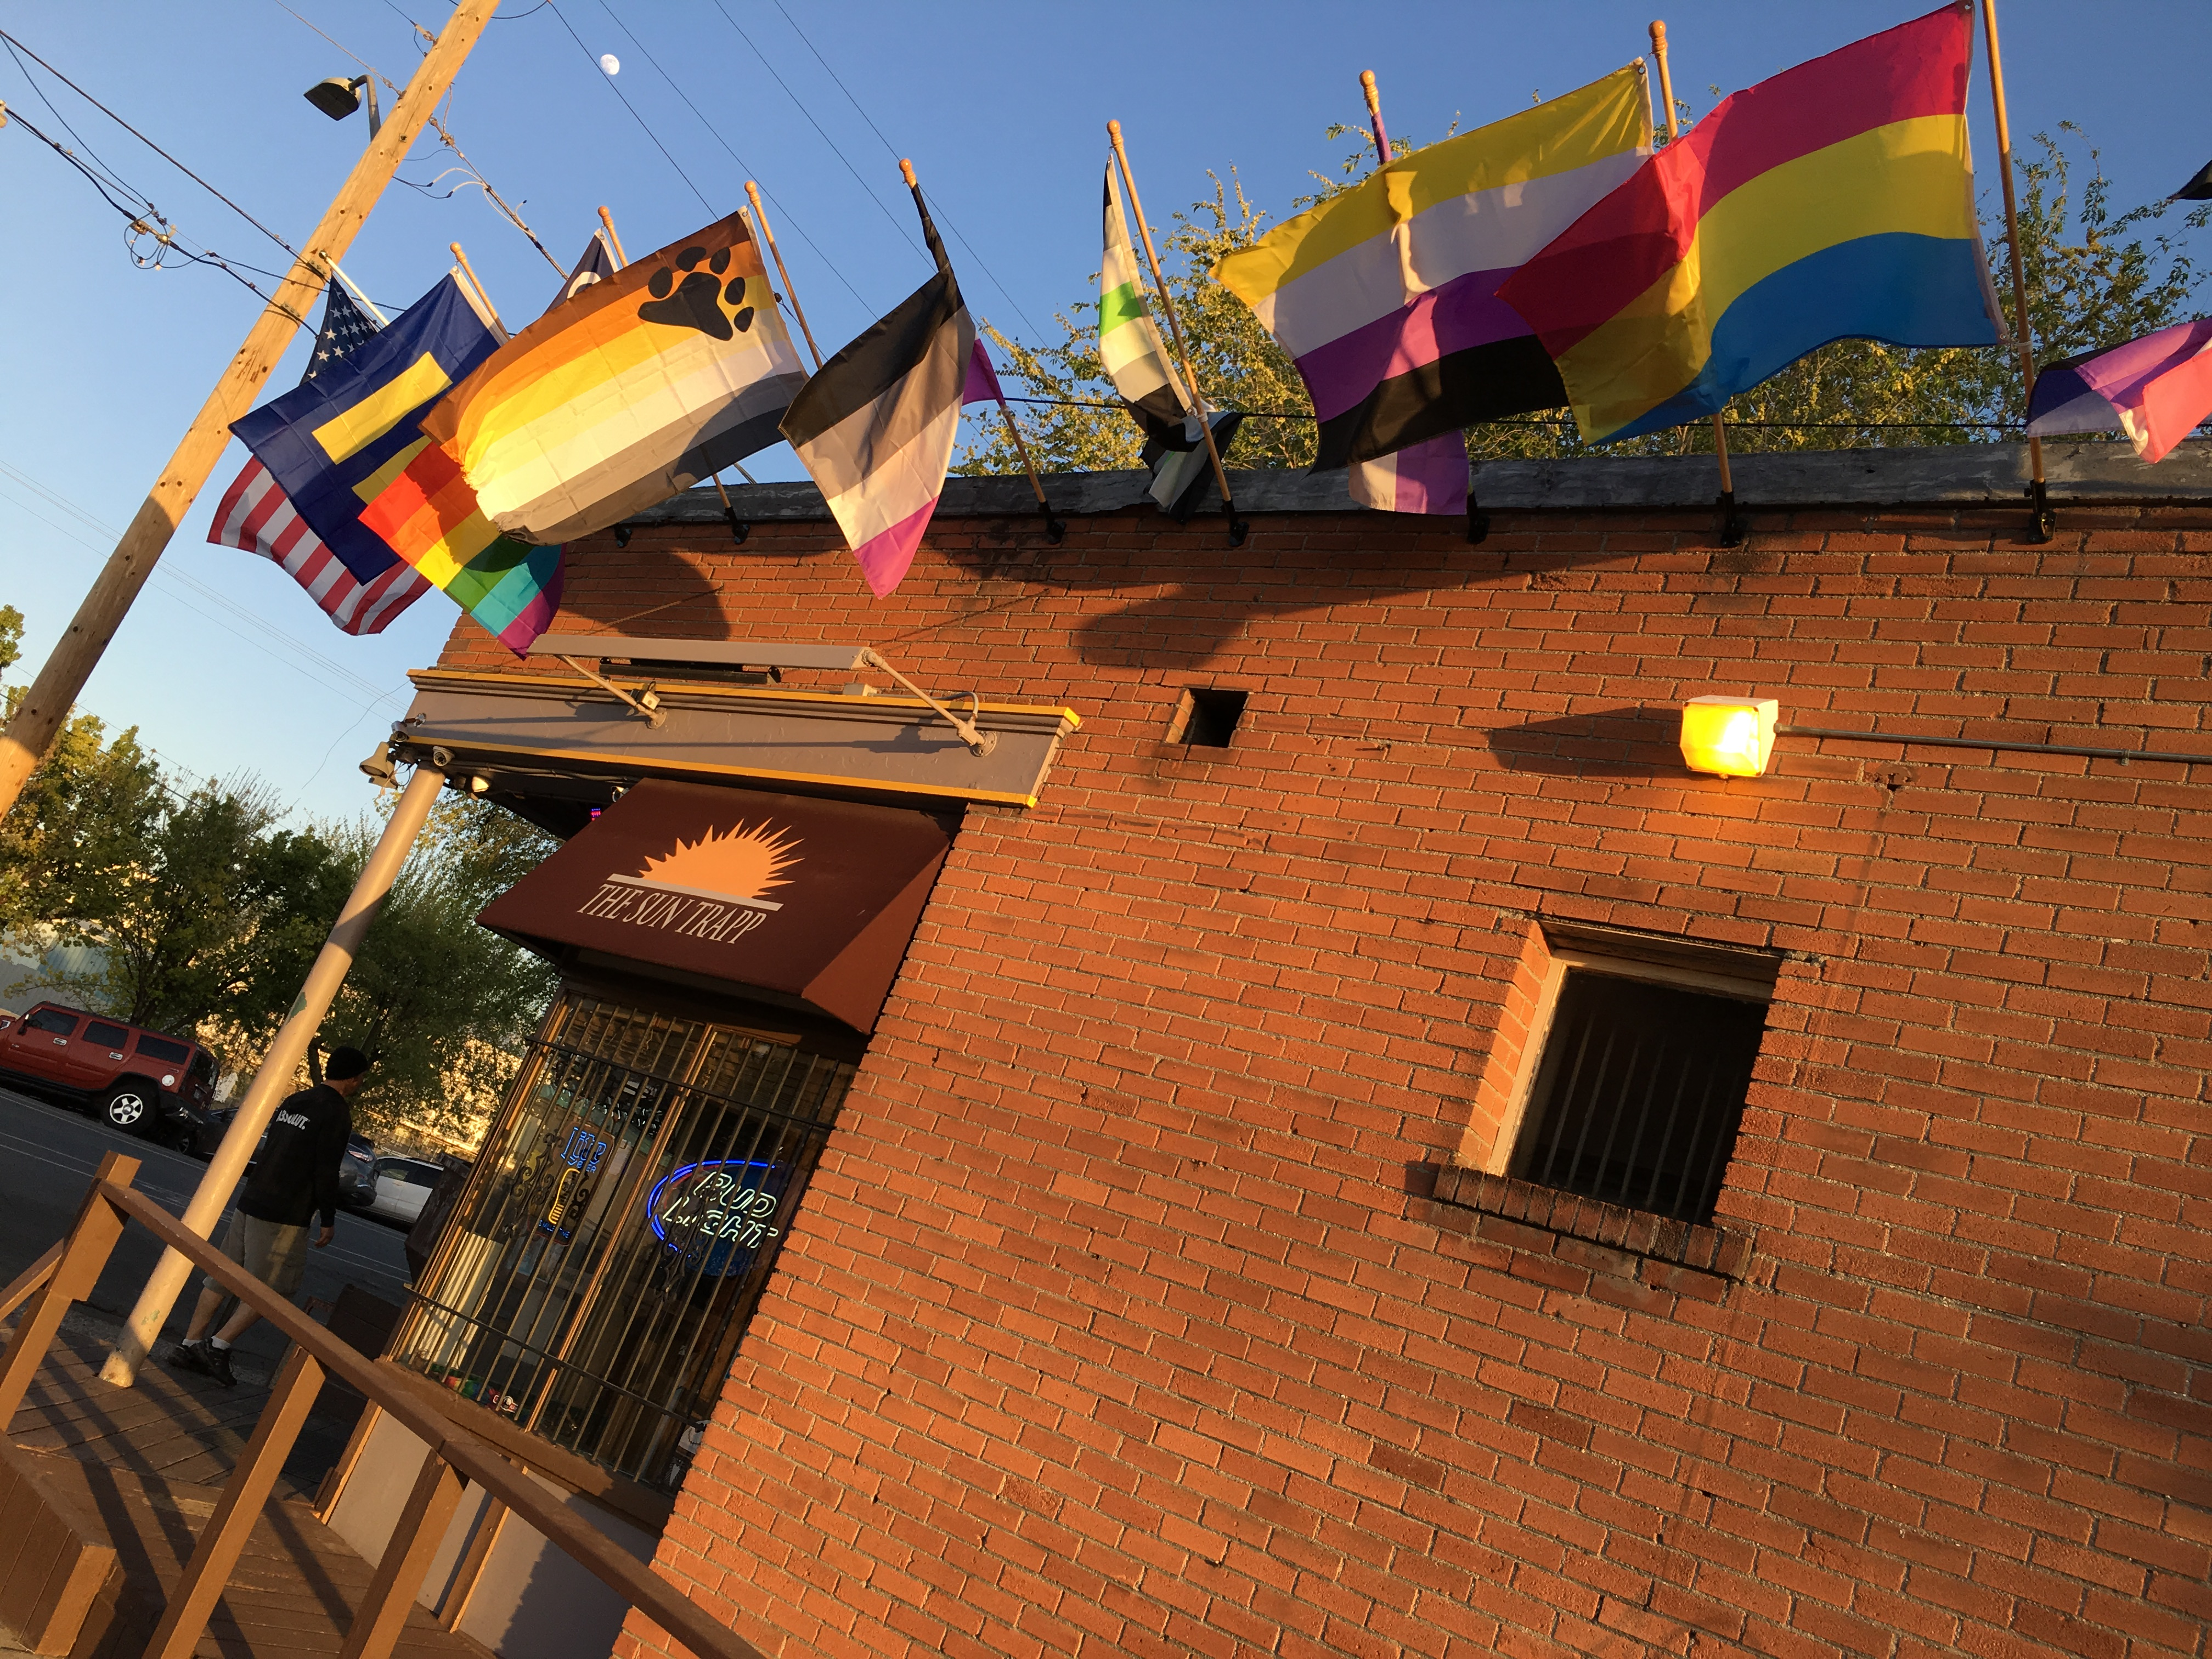 Flags outside Salt Lake City gay bar the Sun Trapp, representing many facets of LGBT culture.